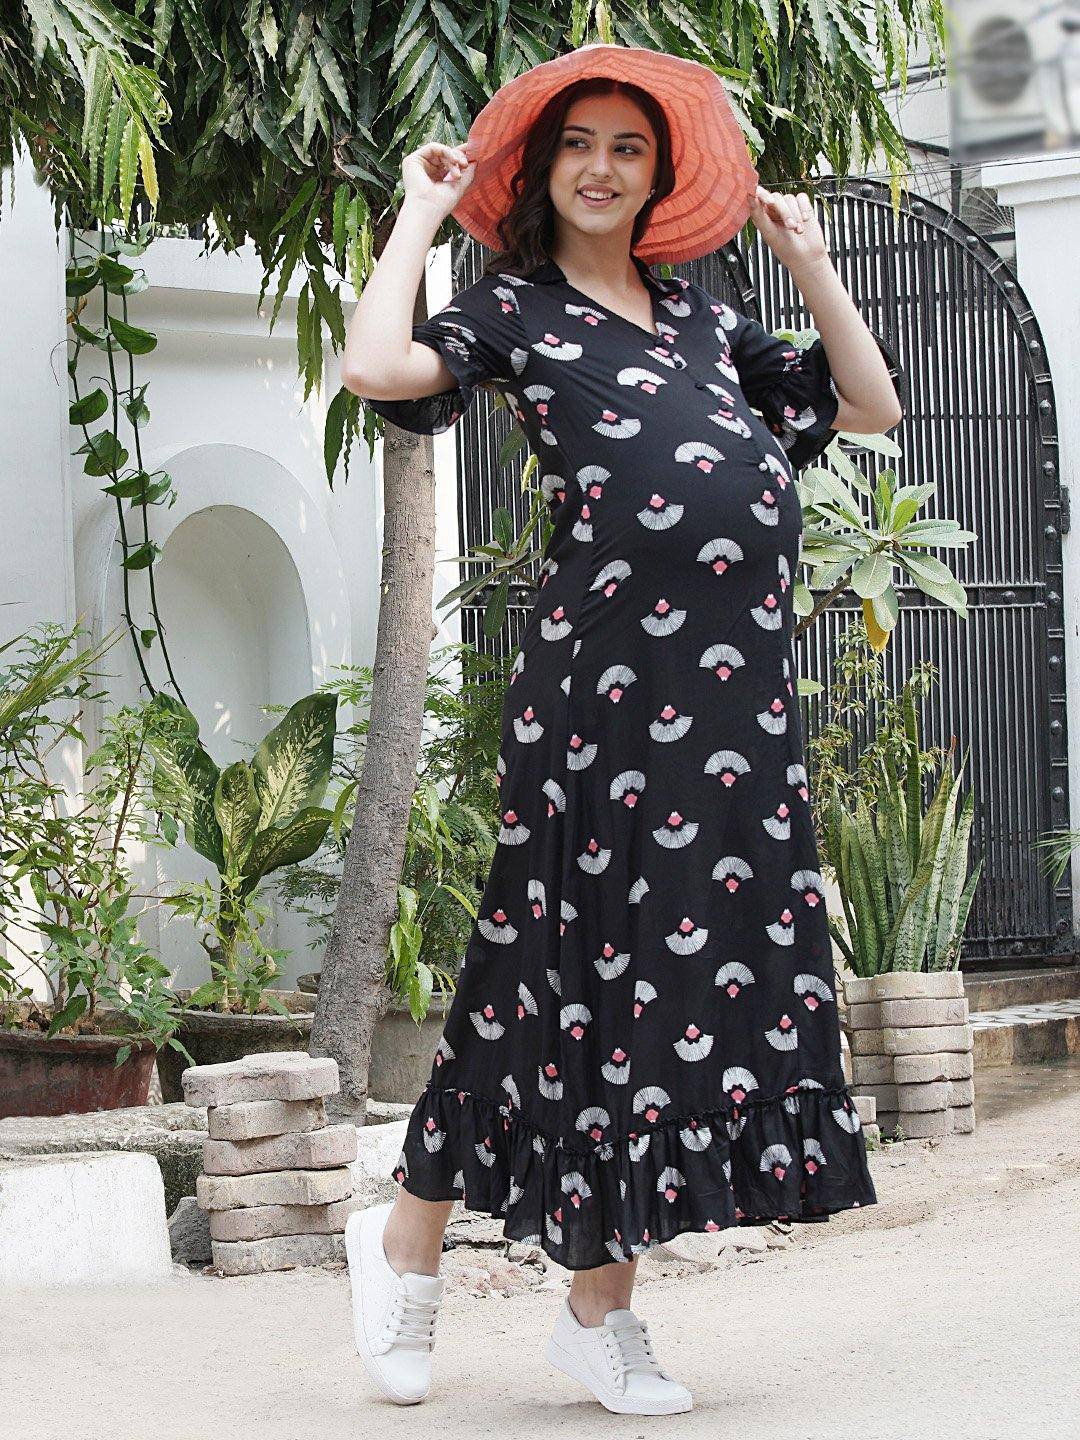 Mine4Nine - Dress - Black A-Line Maxi Maternity Dress w/ Traditional Print, Made of Rayon